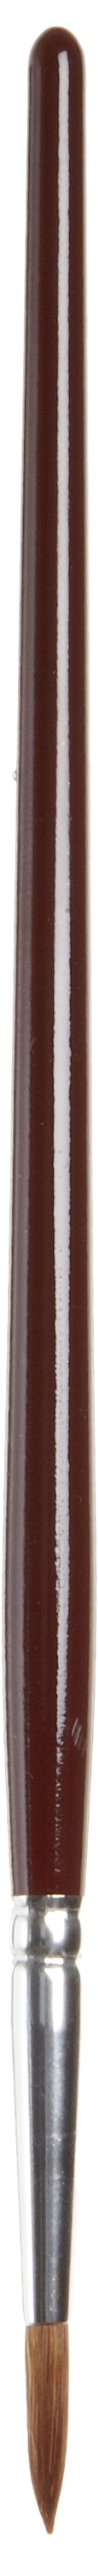 Tanis 00334 Red Sable Marking Brush, #4 Size, 1/8'' Diameter x 1/2'' Trim, 7-1/2'' Overall Length (Pack of 12)